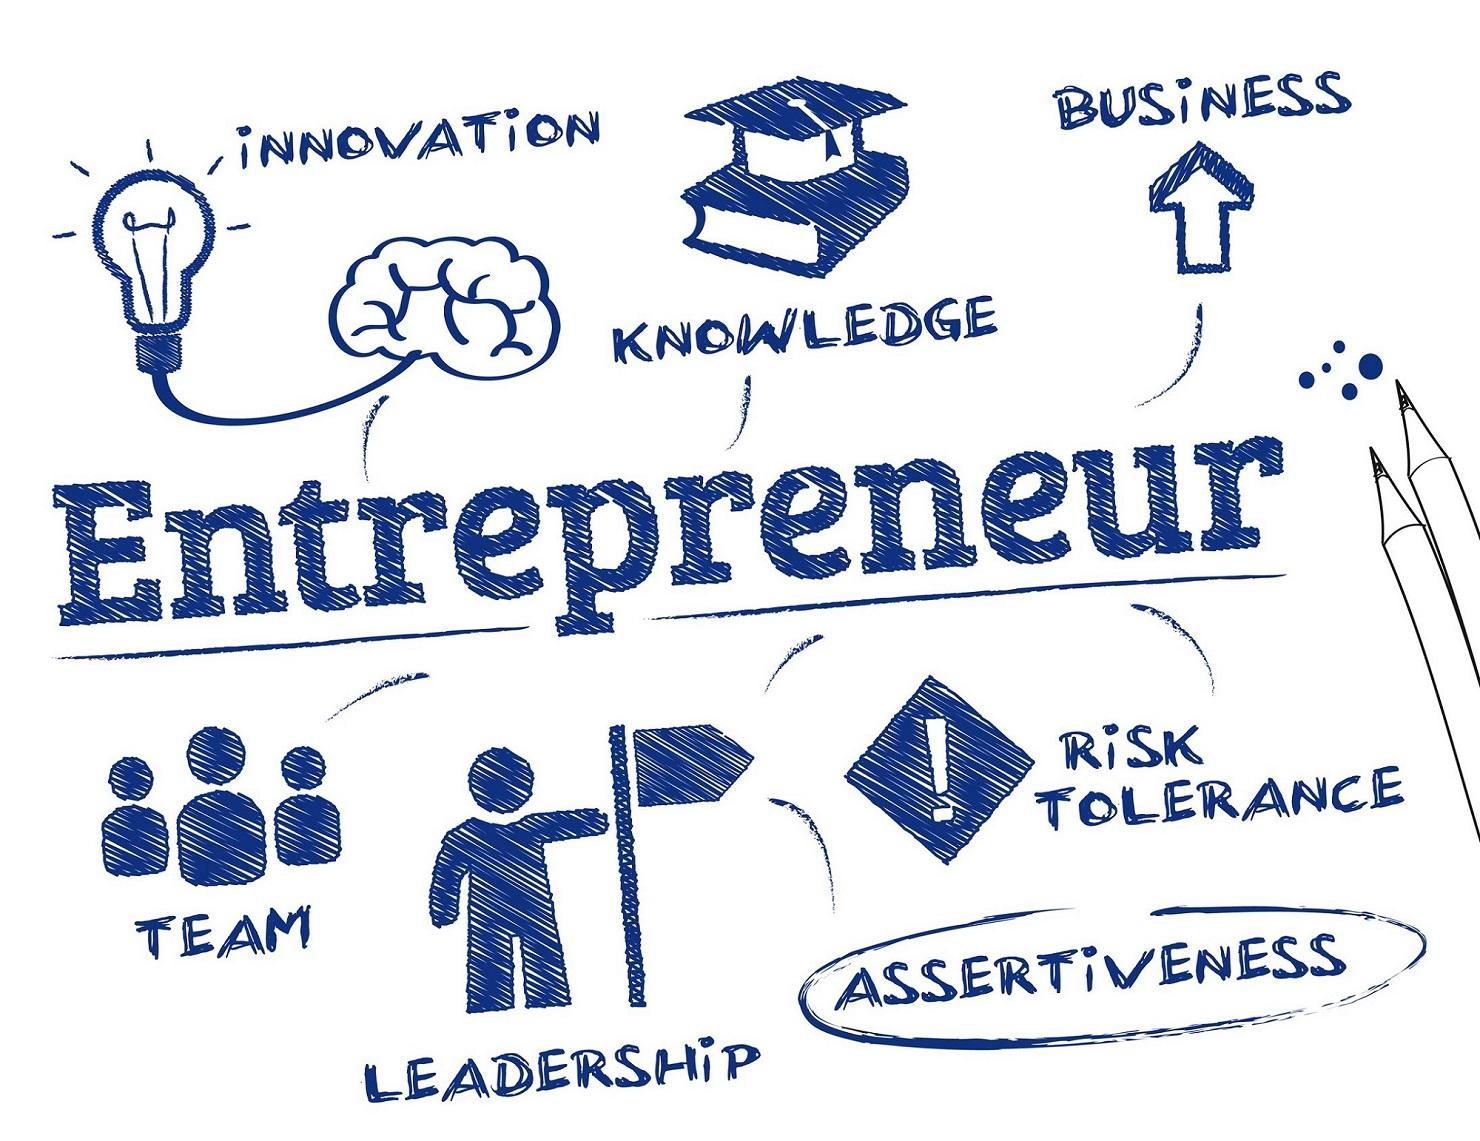 Traits of highly successful entrepreneurs in the world by Tunde Victor